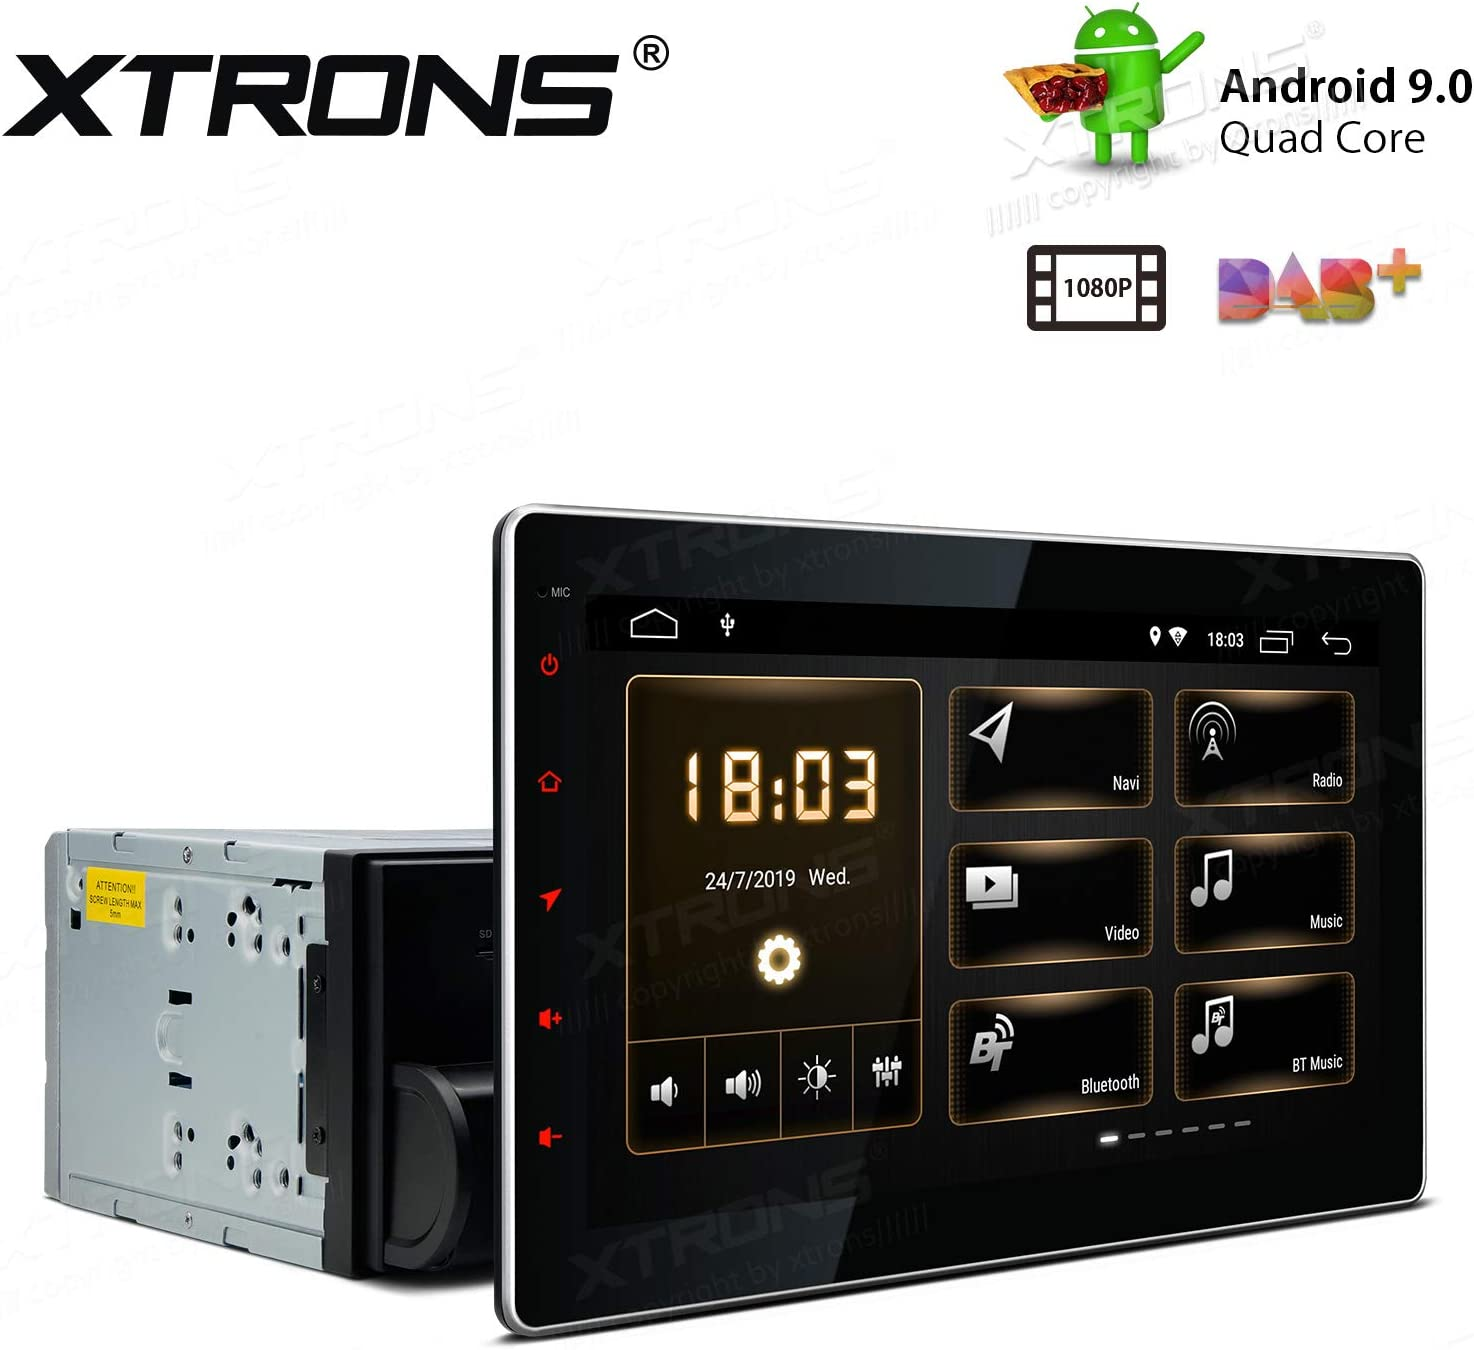 XTRONS 10.1 inch Touch Display Android 9.0 Pie Quad-Core Car Stereo Radio Navigator GPS with USB Port Supports TPMS DVR 4G 3G OBD Backup Camera